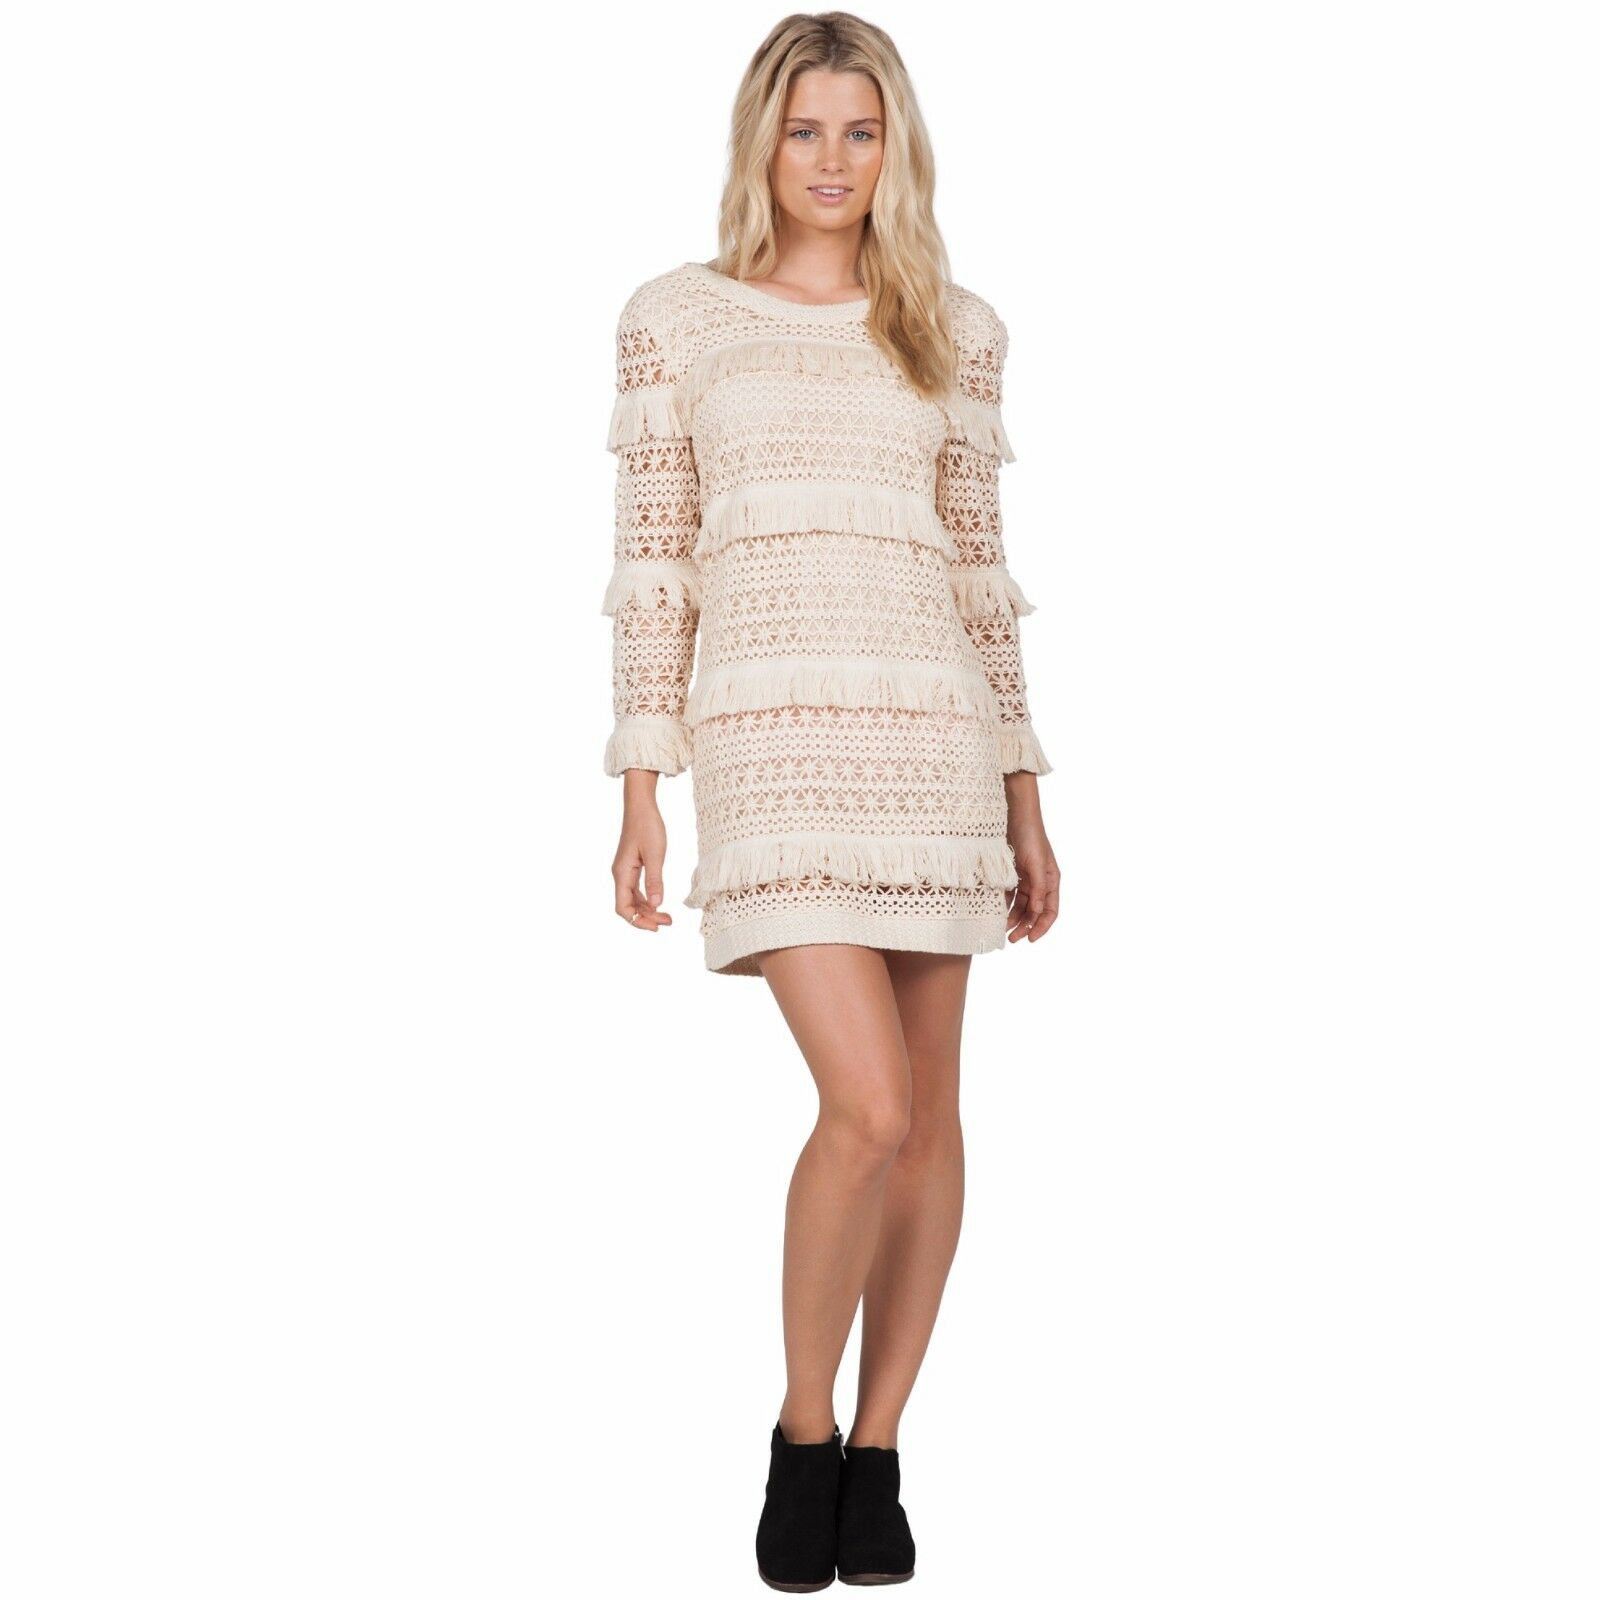 2016 NWT WOMENS VOLCOM COCOKNIT DRESS  S vintage white sweater dress fringe